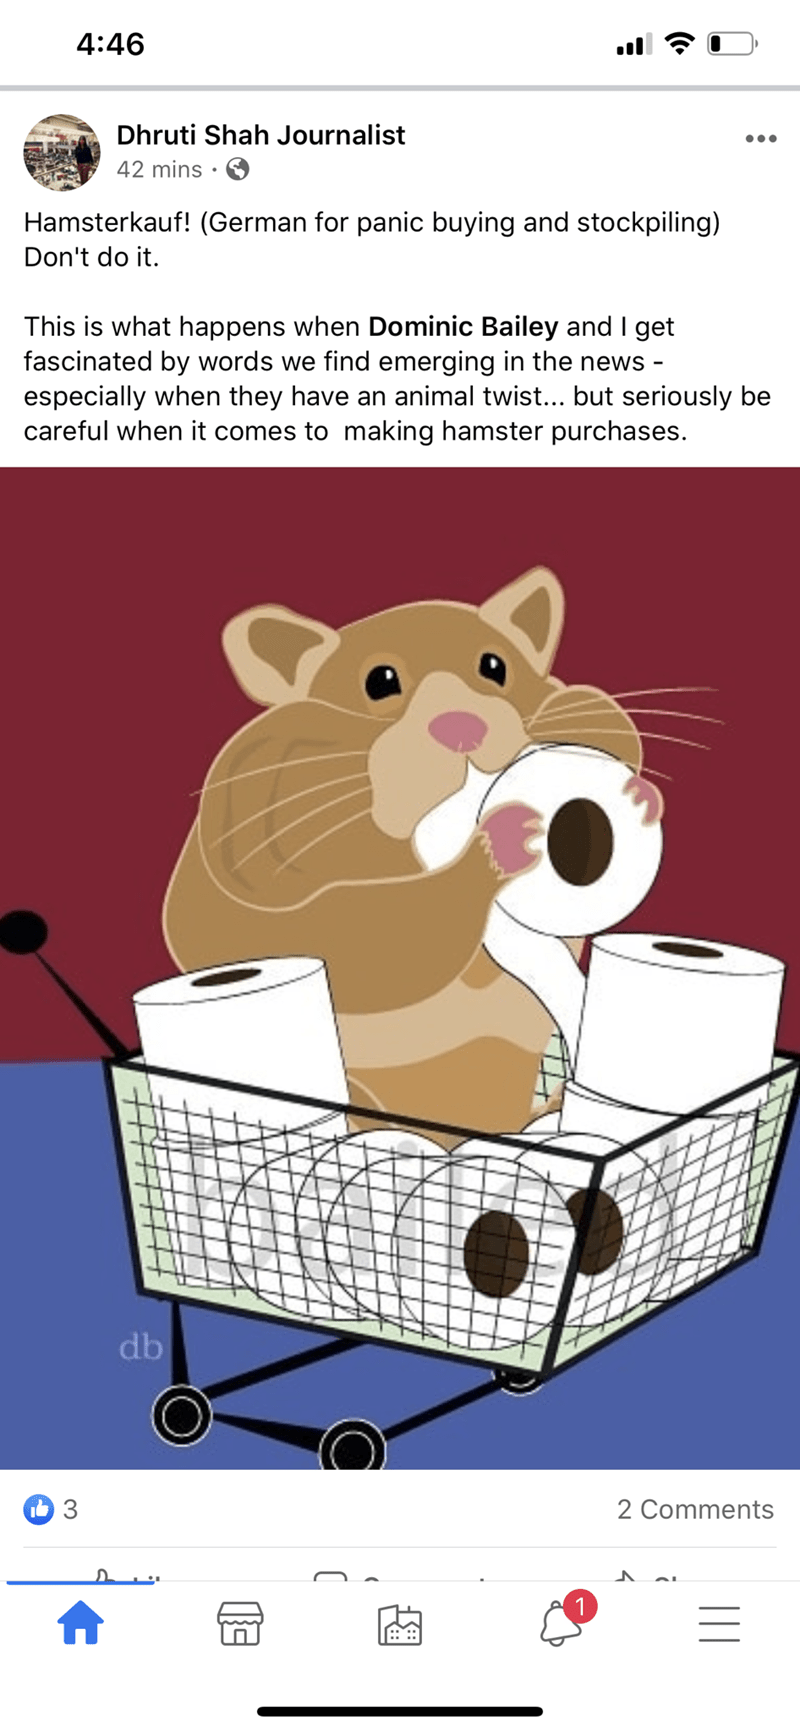 Cartoon - 4:46 Dhruti Shah Journalist •.. 42 mins Hamsterkauf! (German for panic buying and stockpiling) Don't do it. This is what happens when Dominic Bailey and I get fascinated by words we find emerging in the news - especially when they have an animal twist... but seriously be careful when it comes to making hamster purchases. db 3 2 Comments 1